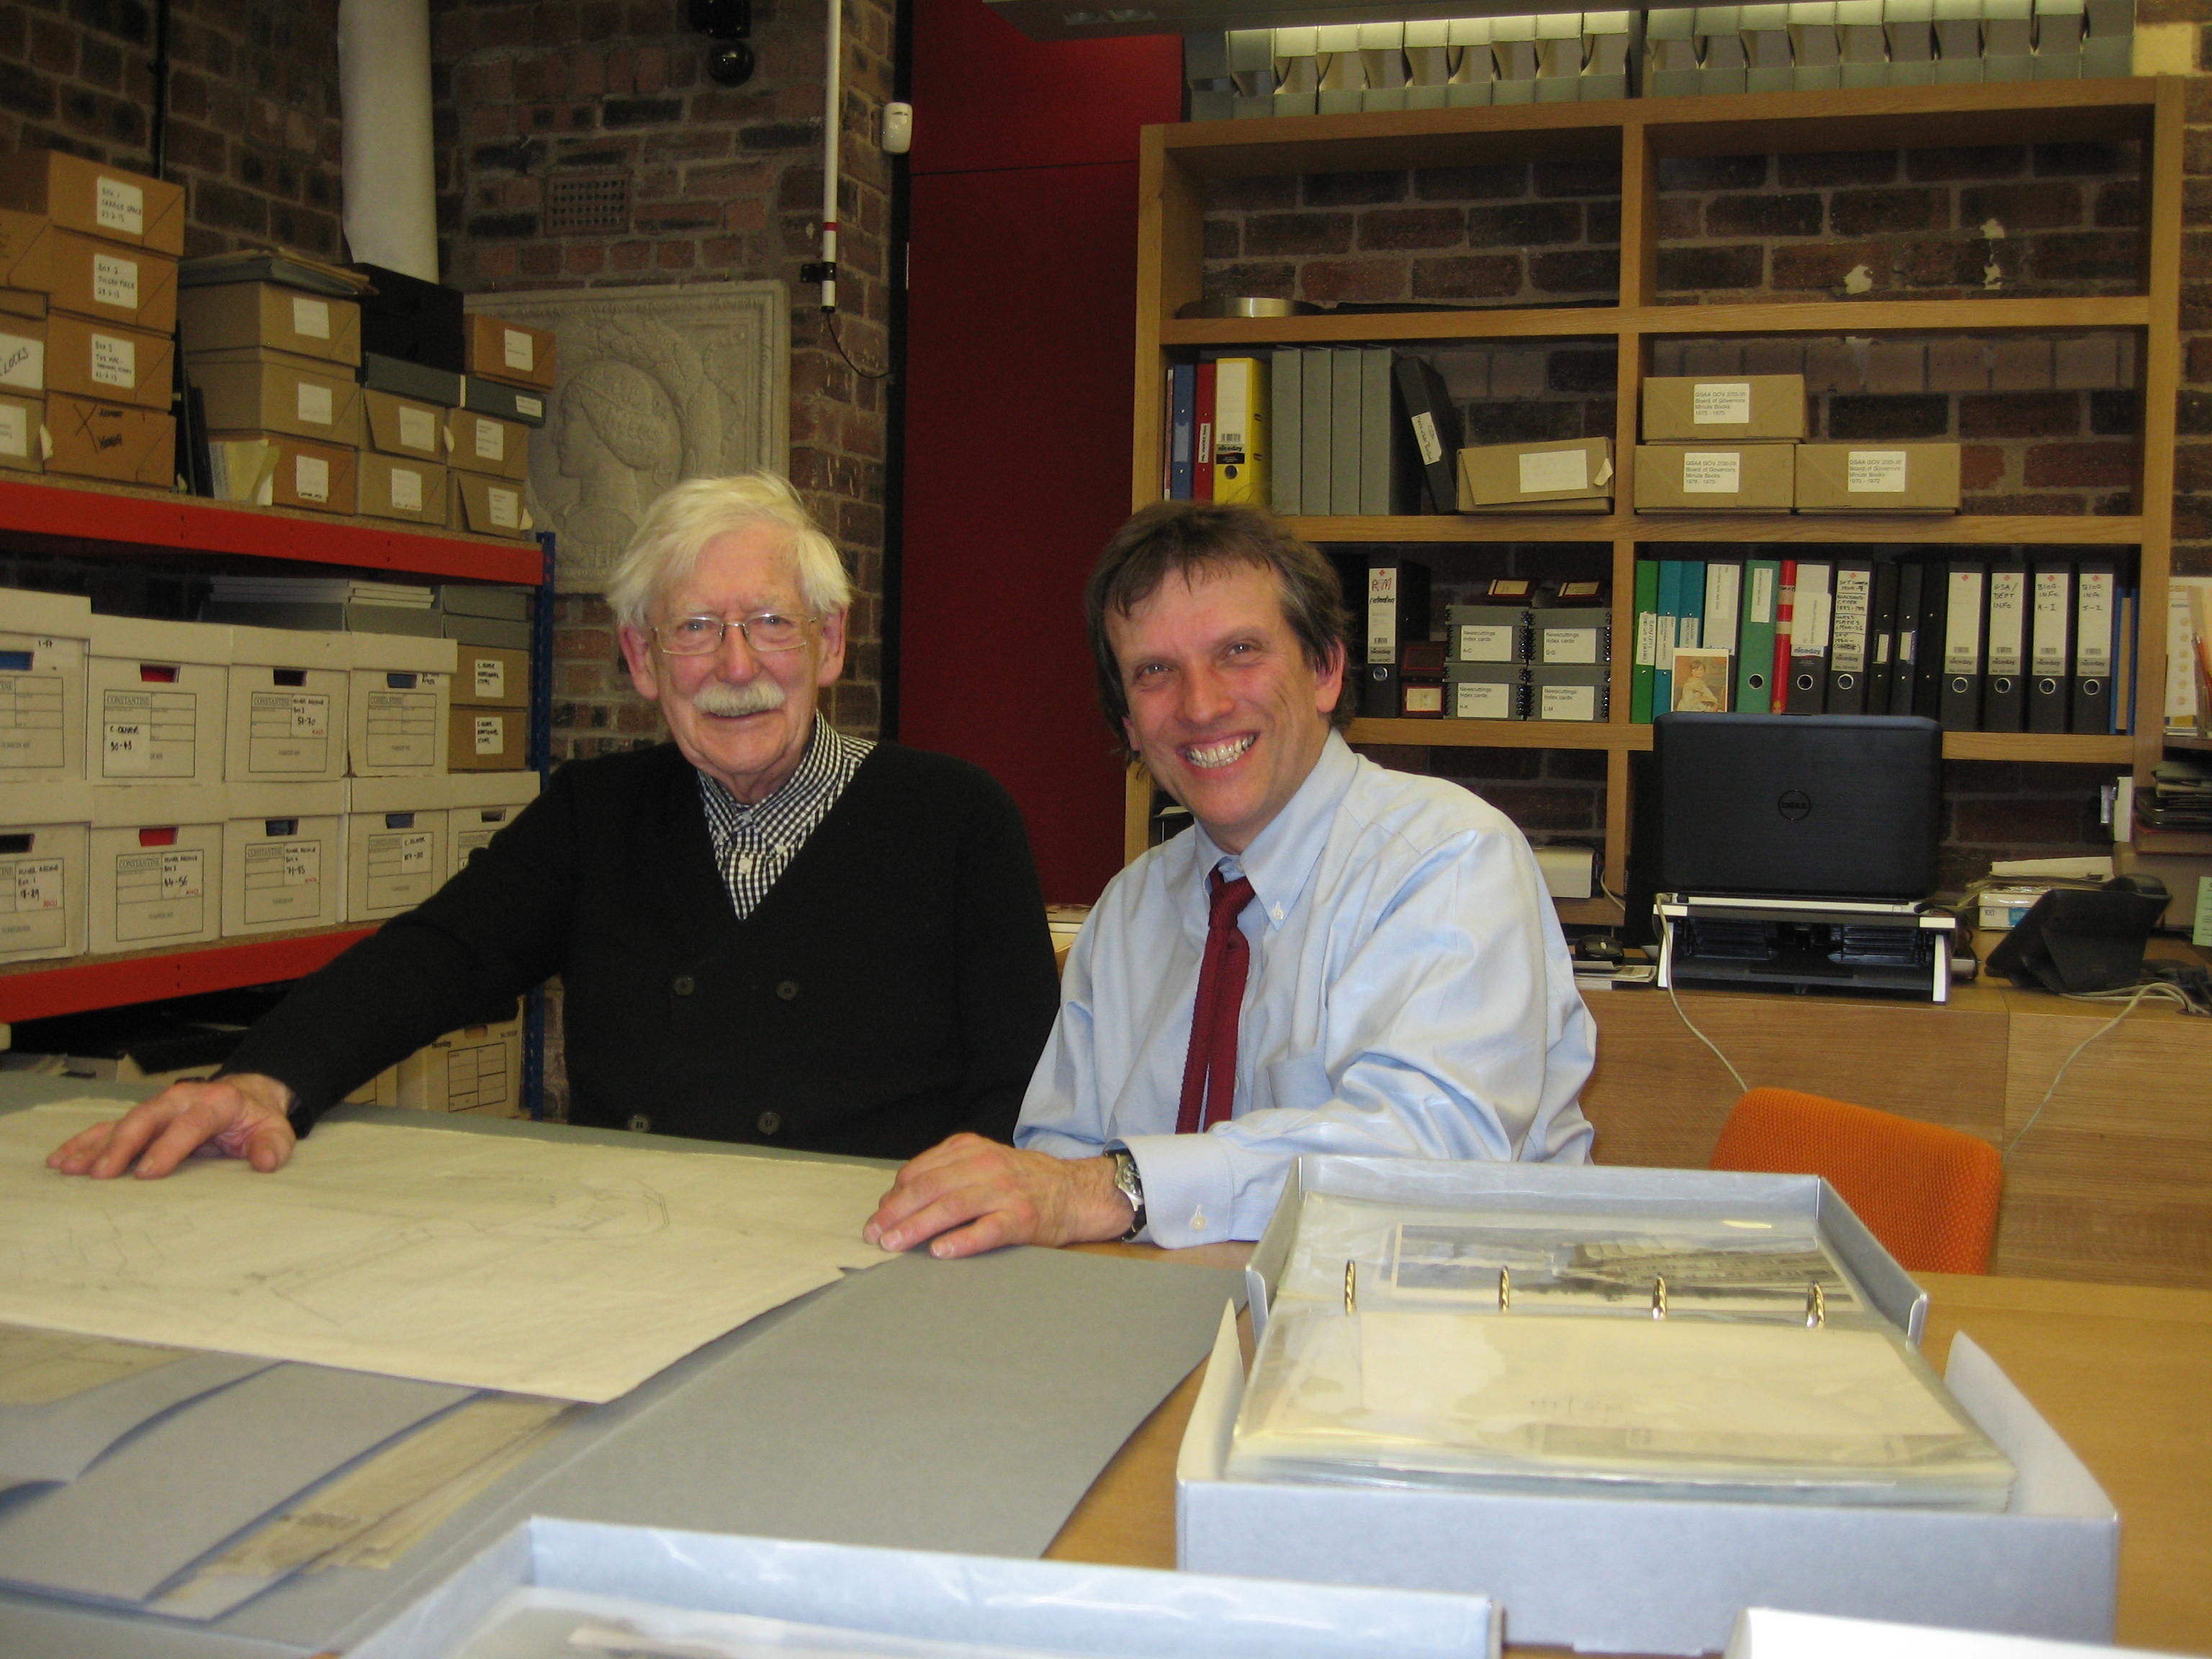 Andy MacMillan (left) and broadcaster Jonathan Glancey examining Gillespie, Kidd & Coia architectural drawings in our office